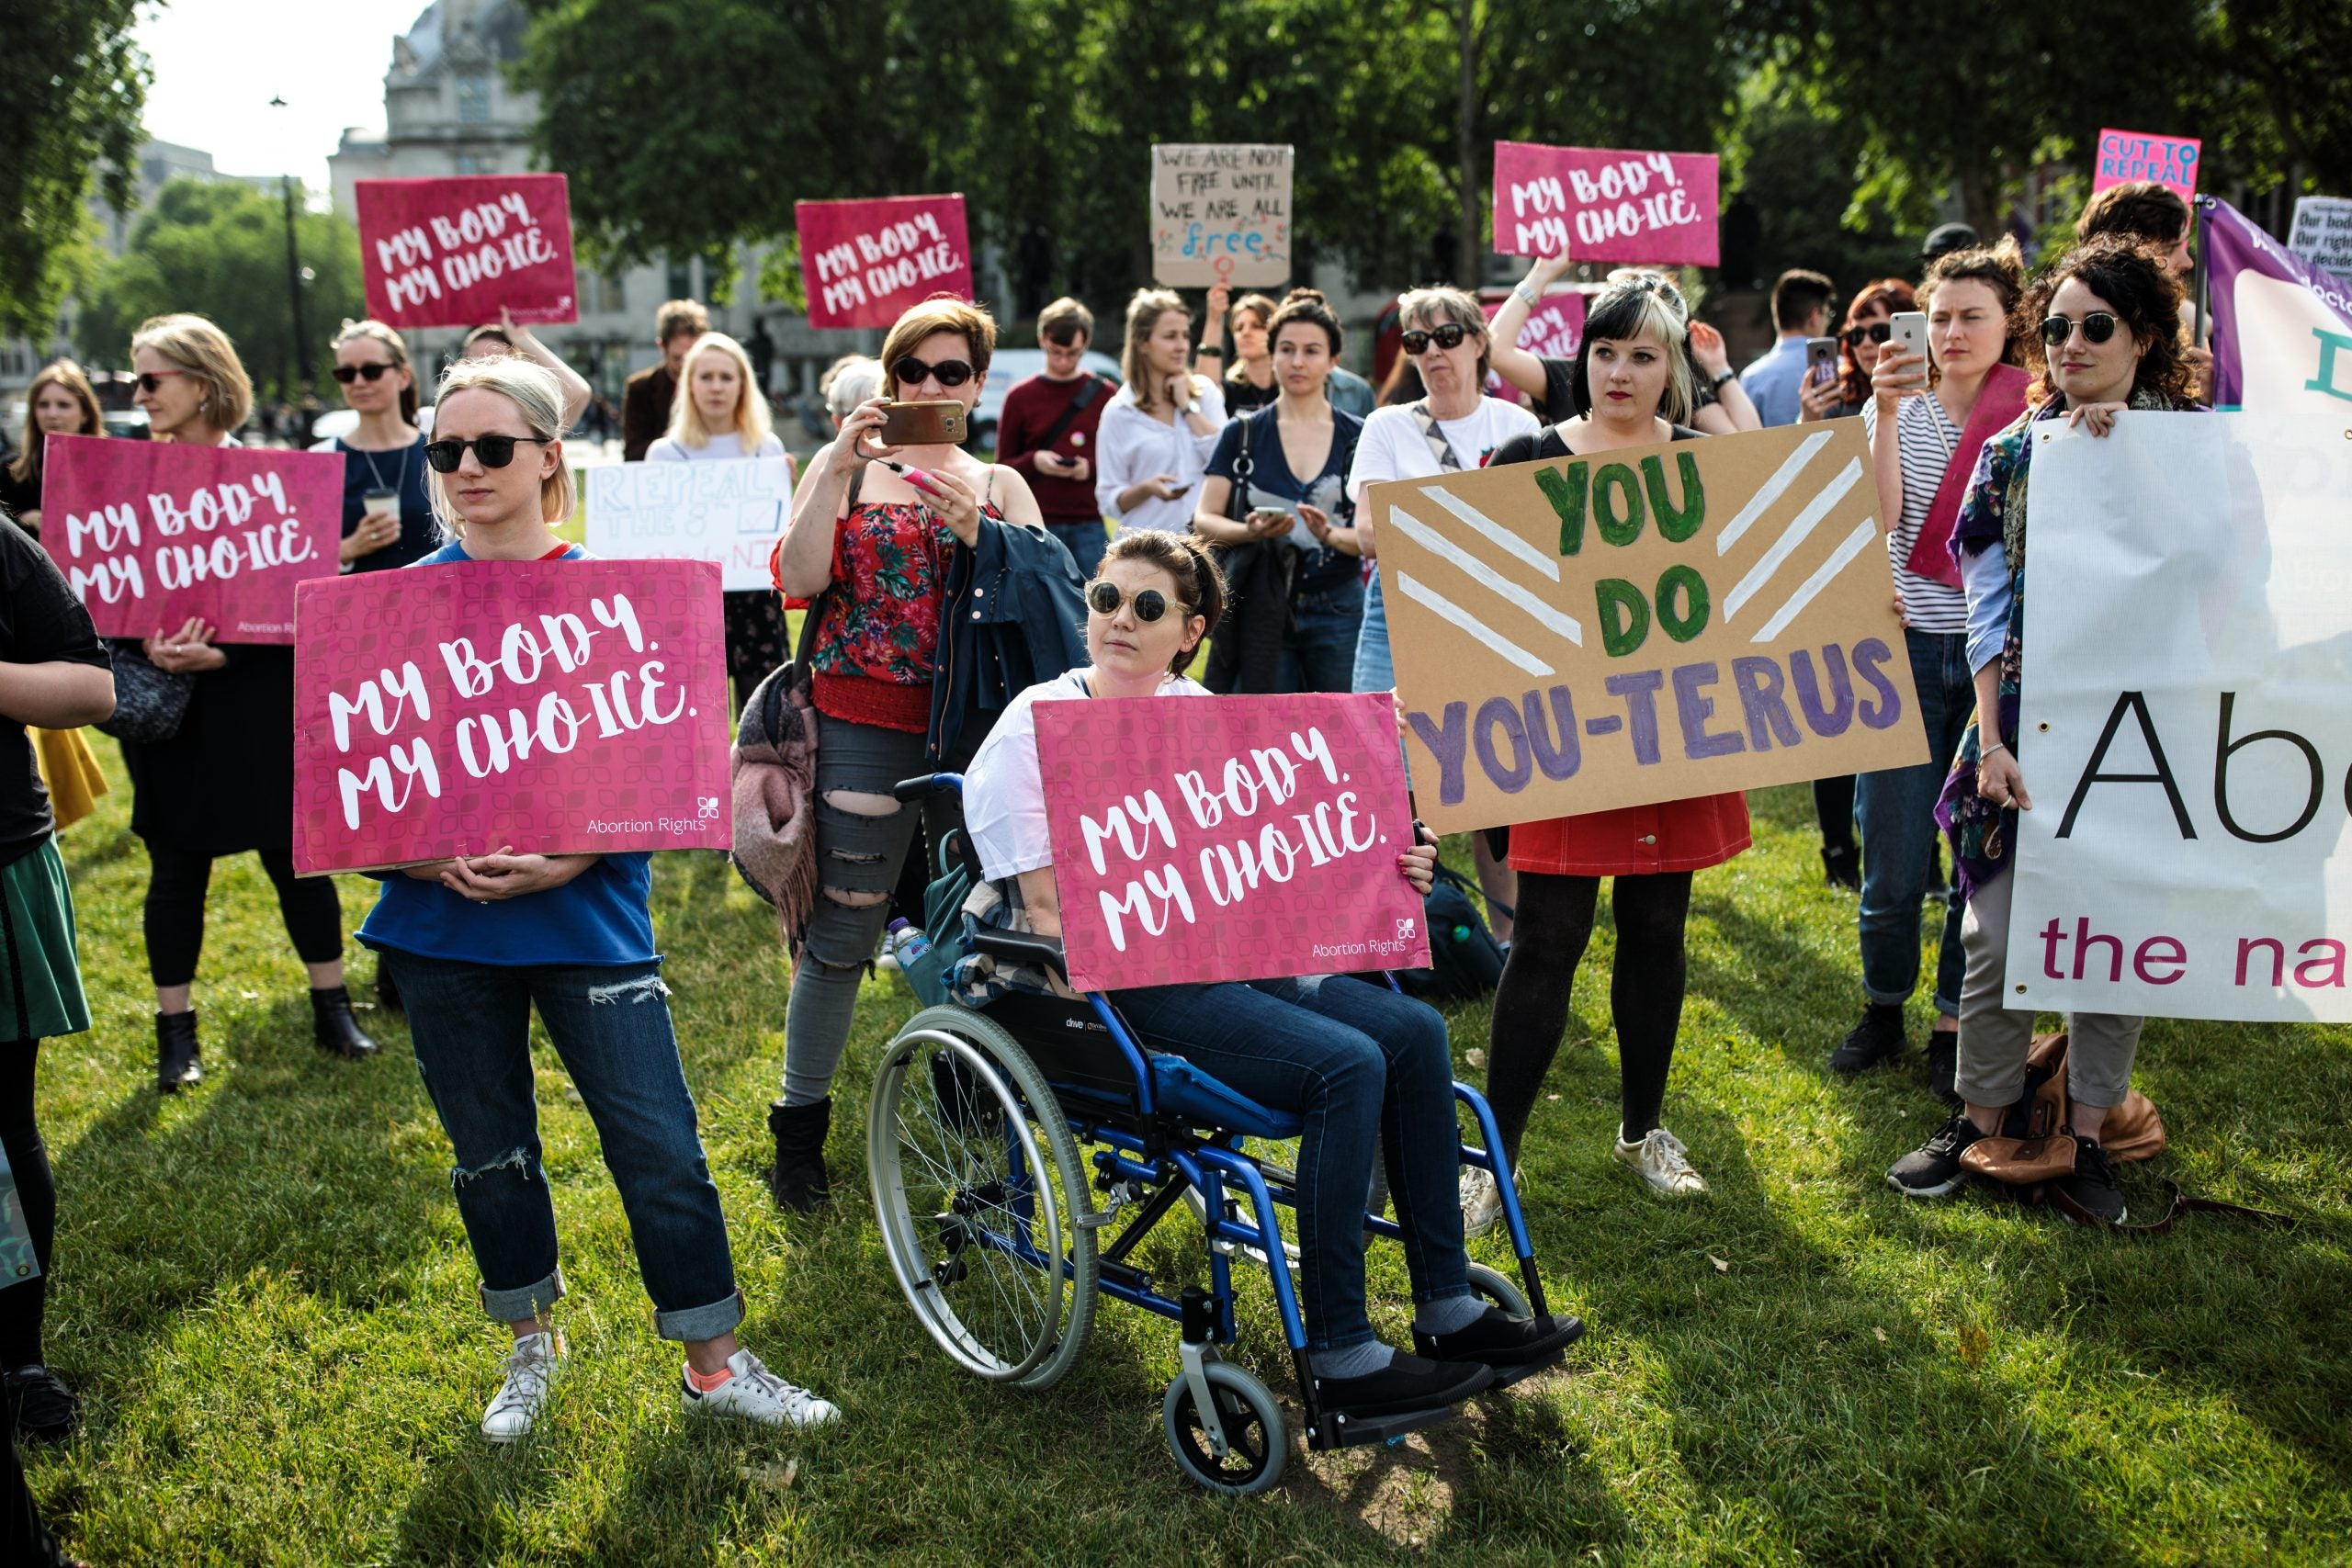 Abortion is now legal in Ireland. That doesn't mean it's accessible